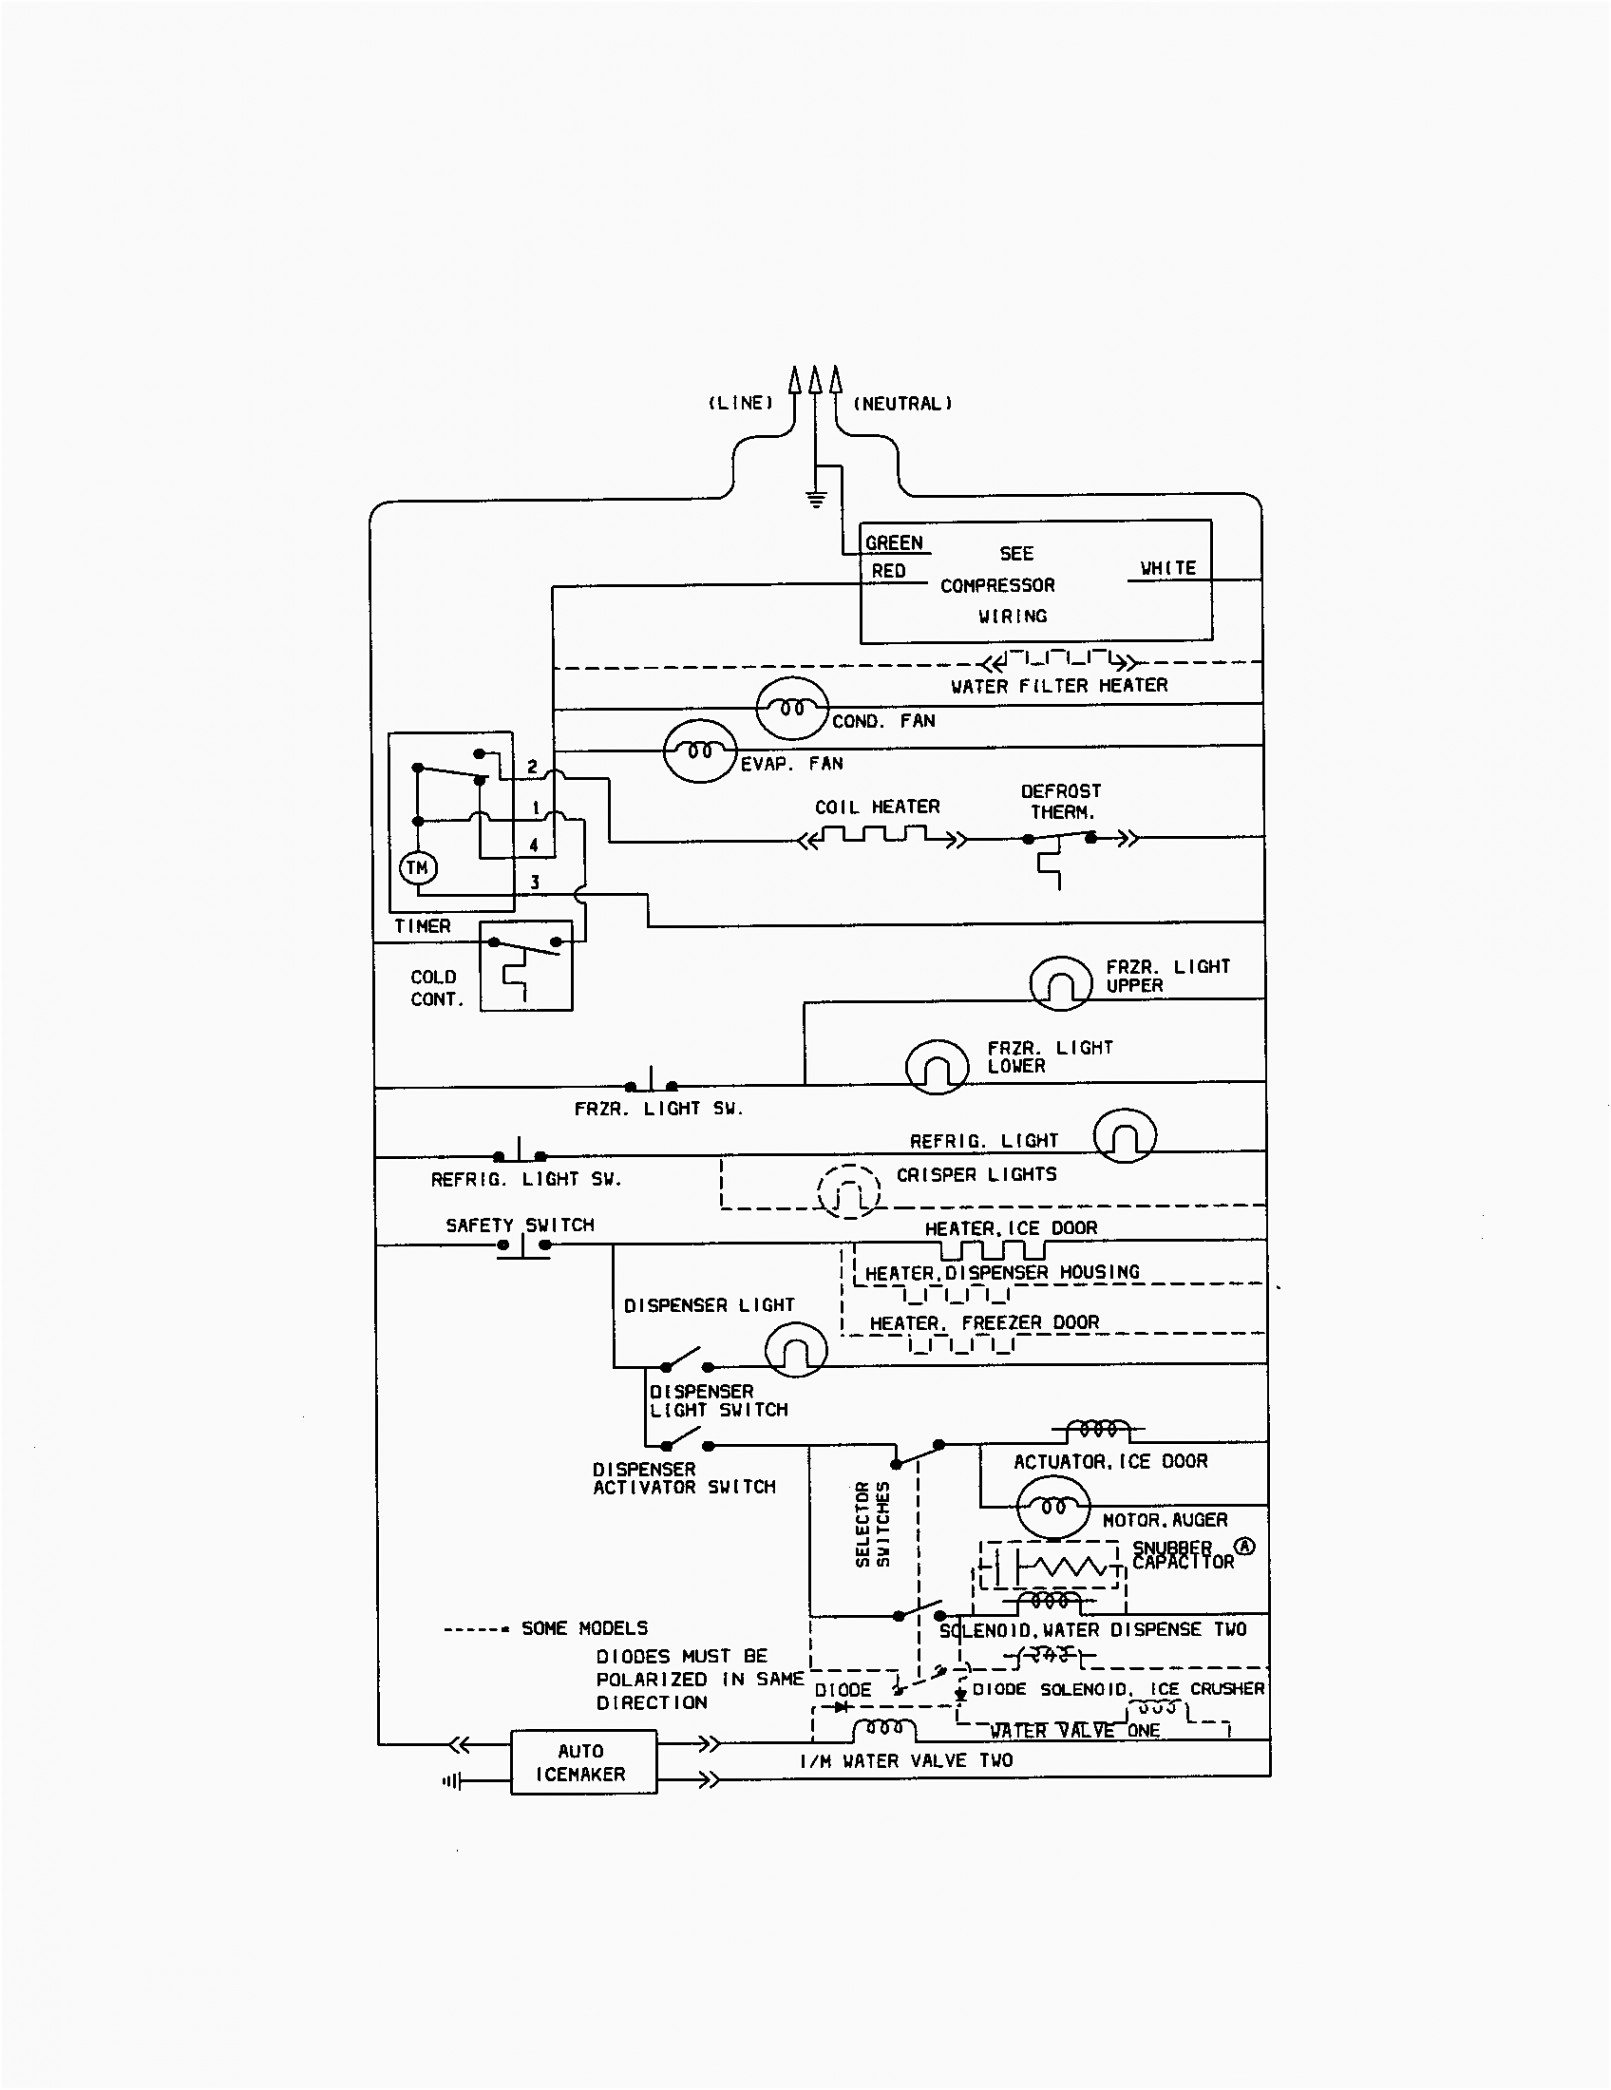 Wiring Diagram For Refrigerator Diy